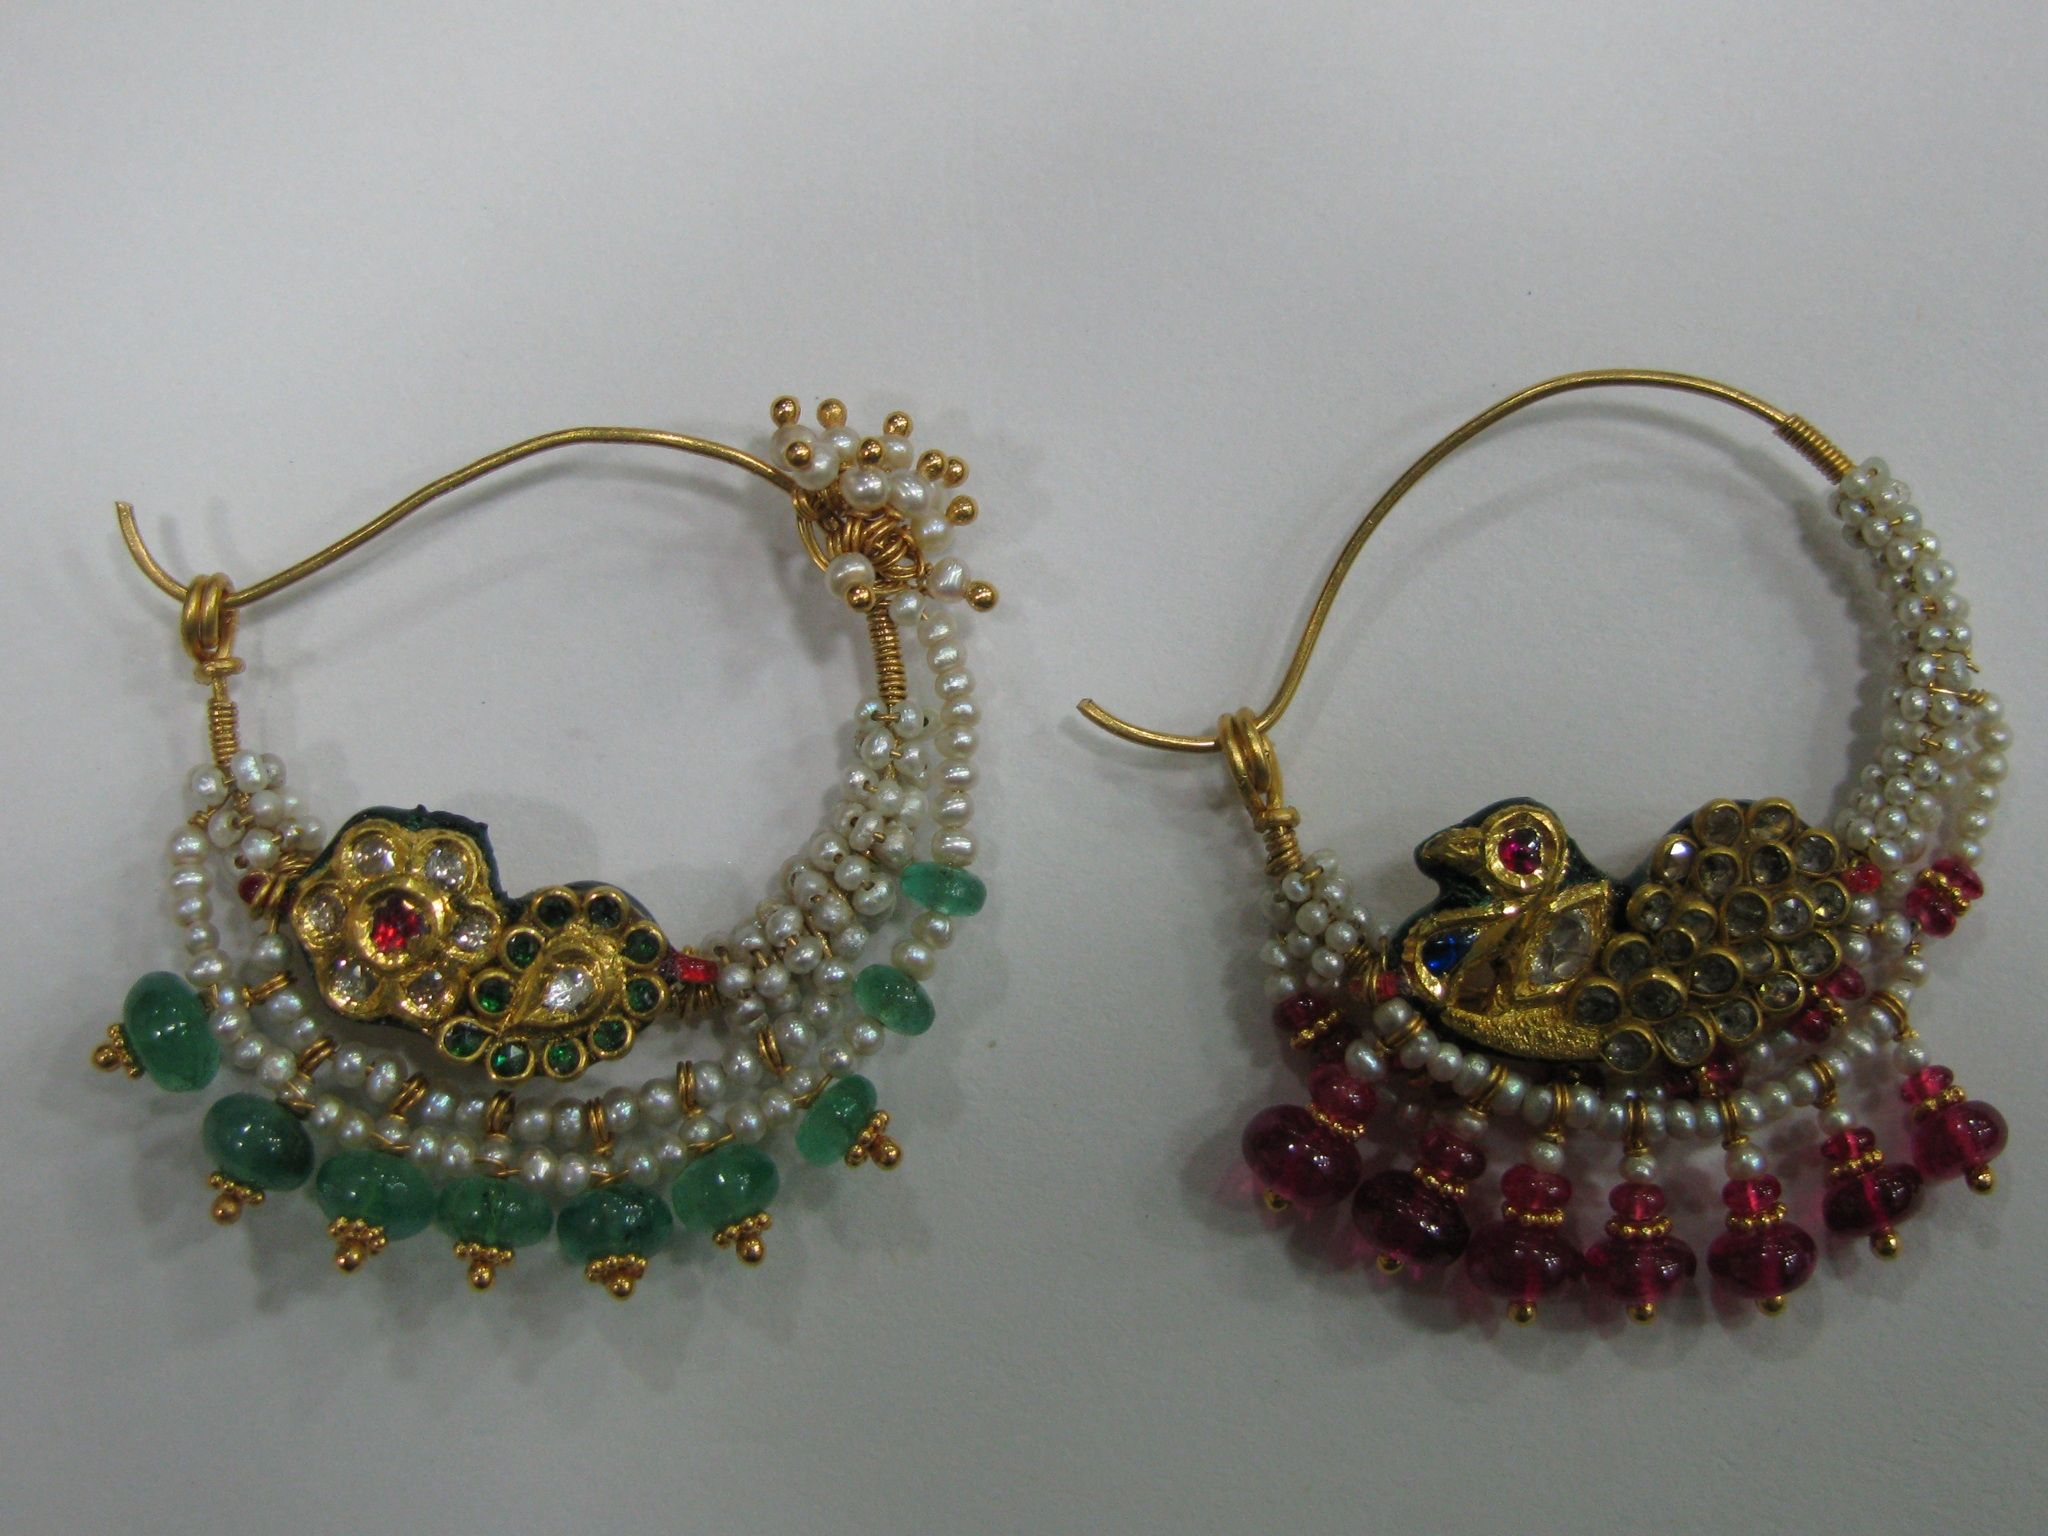 About nath nose ring mukku pudaka on pinterest jewellery gold nose - Amazing Old Basra Pearls Indian Traditional Nose Rings